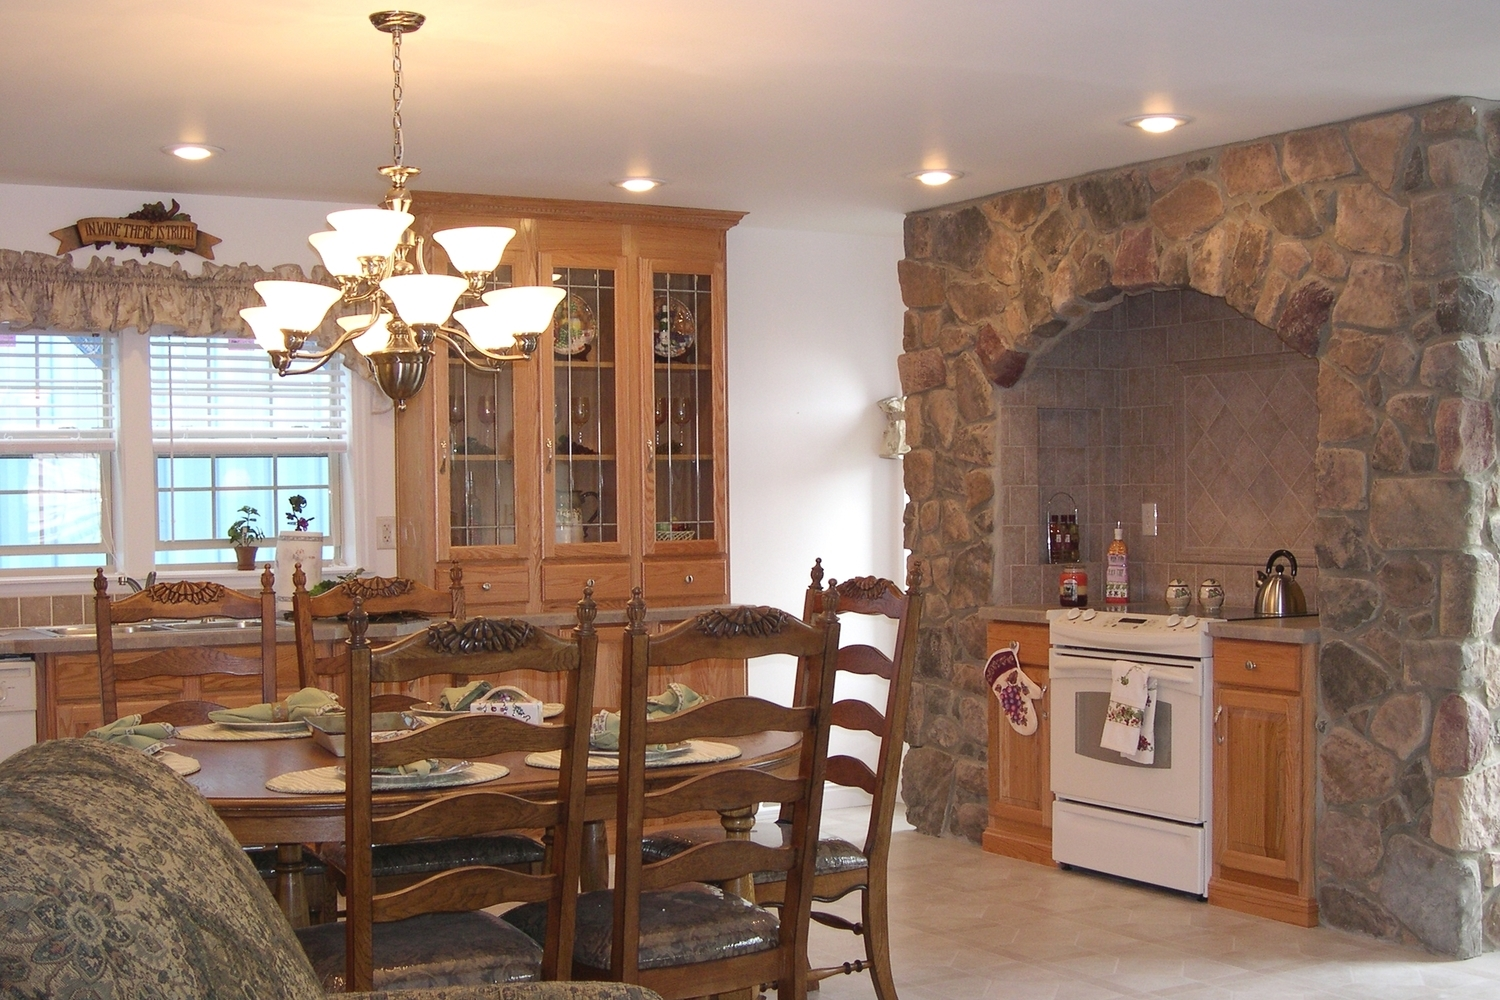 Stand-alone range area with floor-to-ceiling hand-laid Bucks County Rubble stone